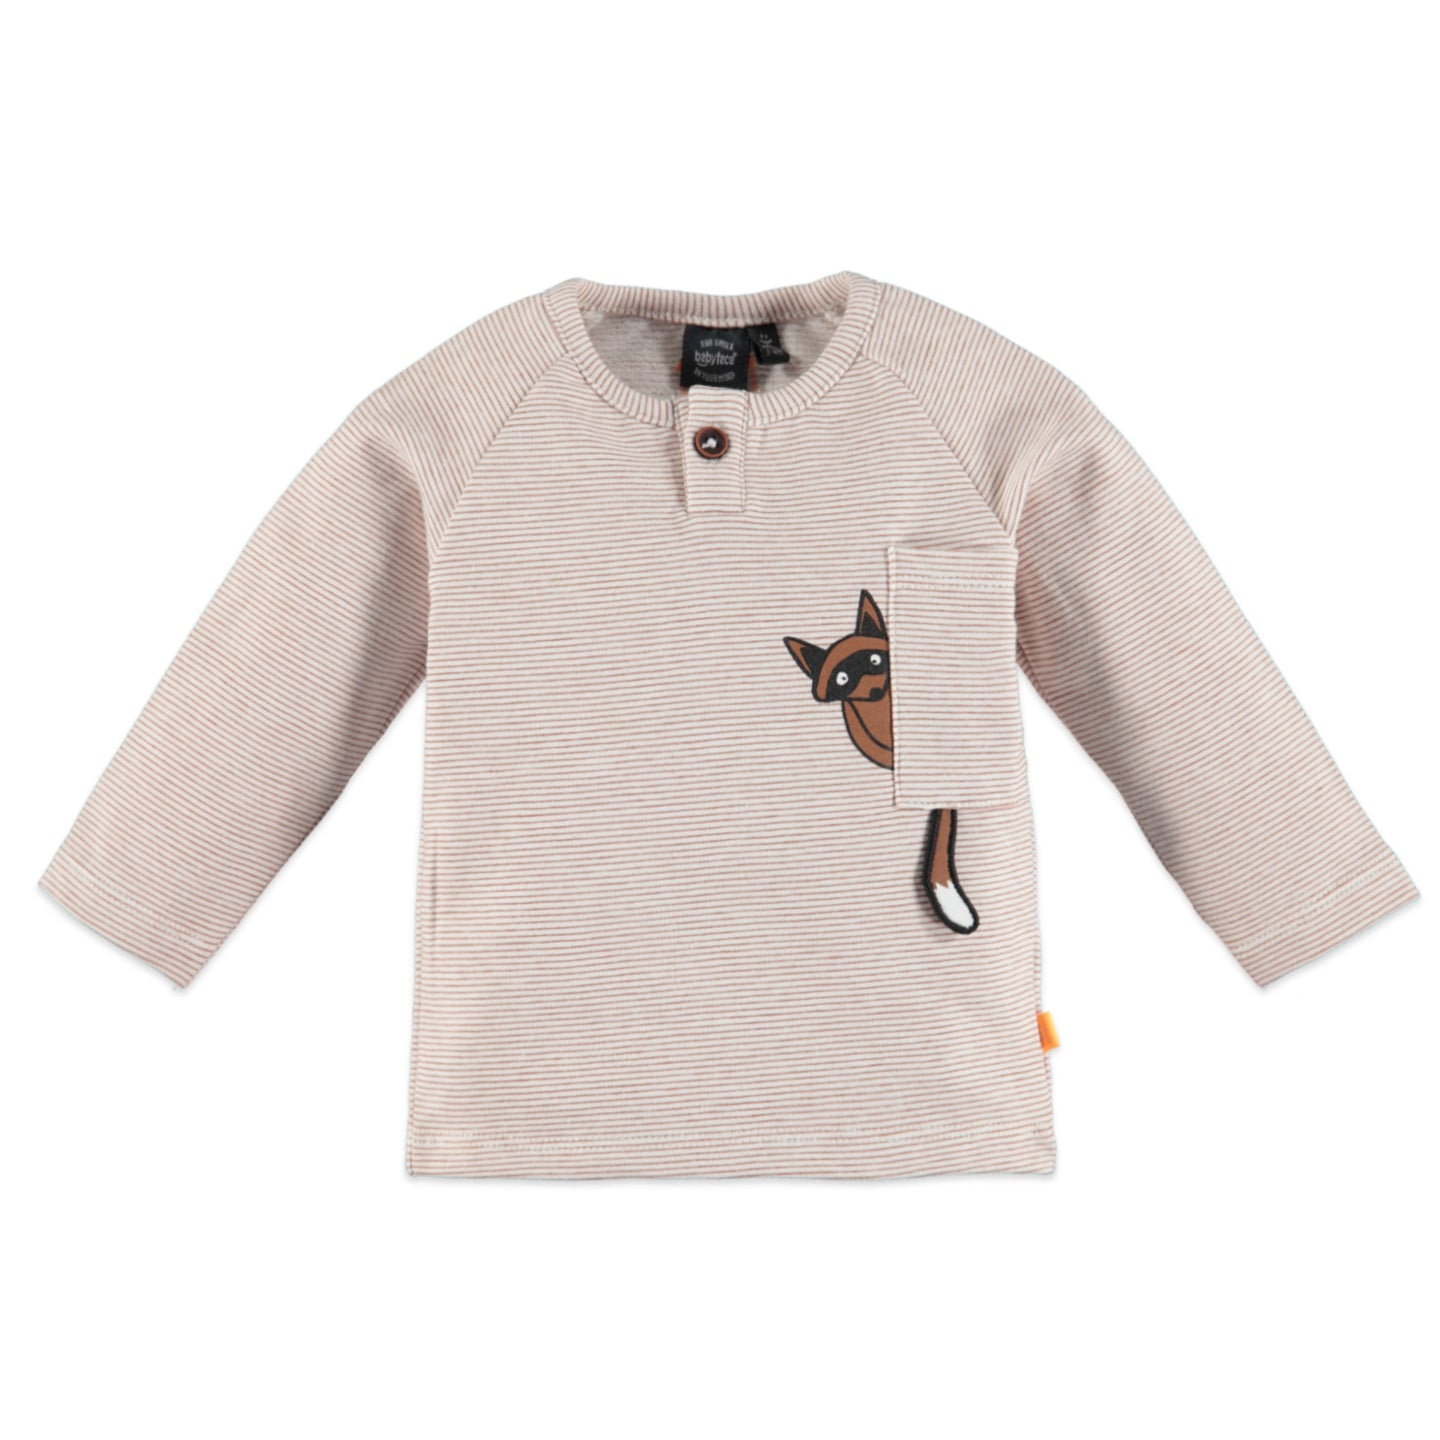 Babyface - Organic Baby Raccon Striped Long Sleeve - Caramel